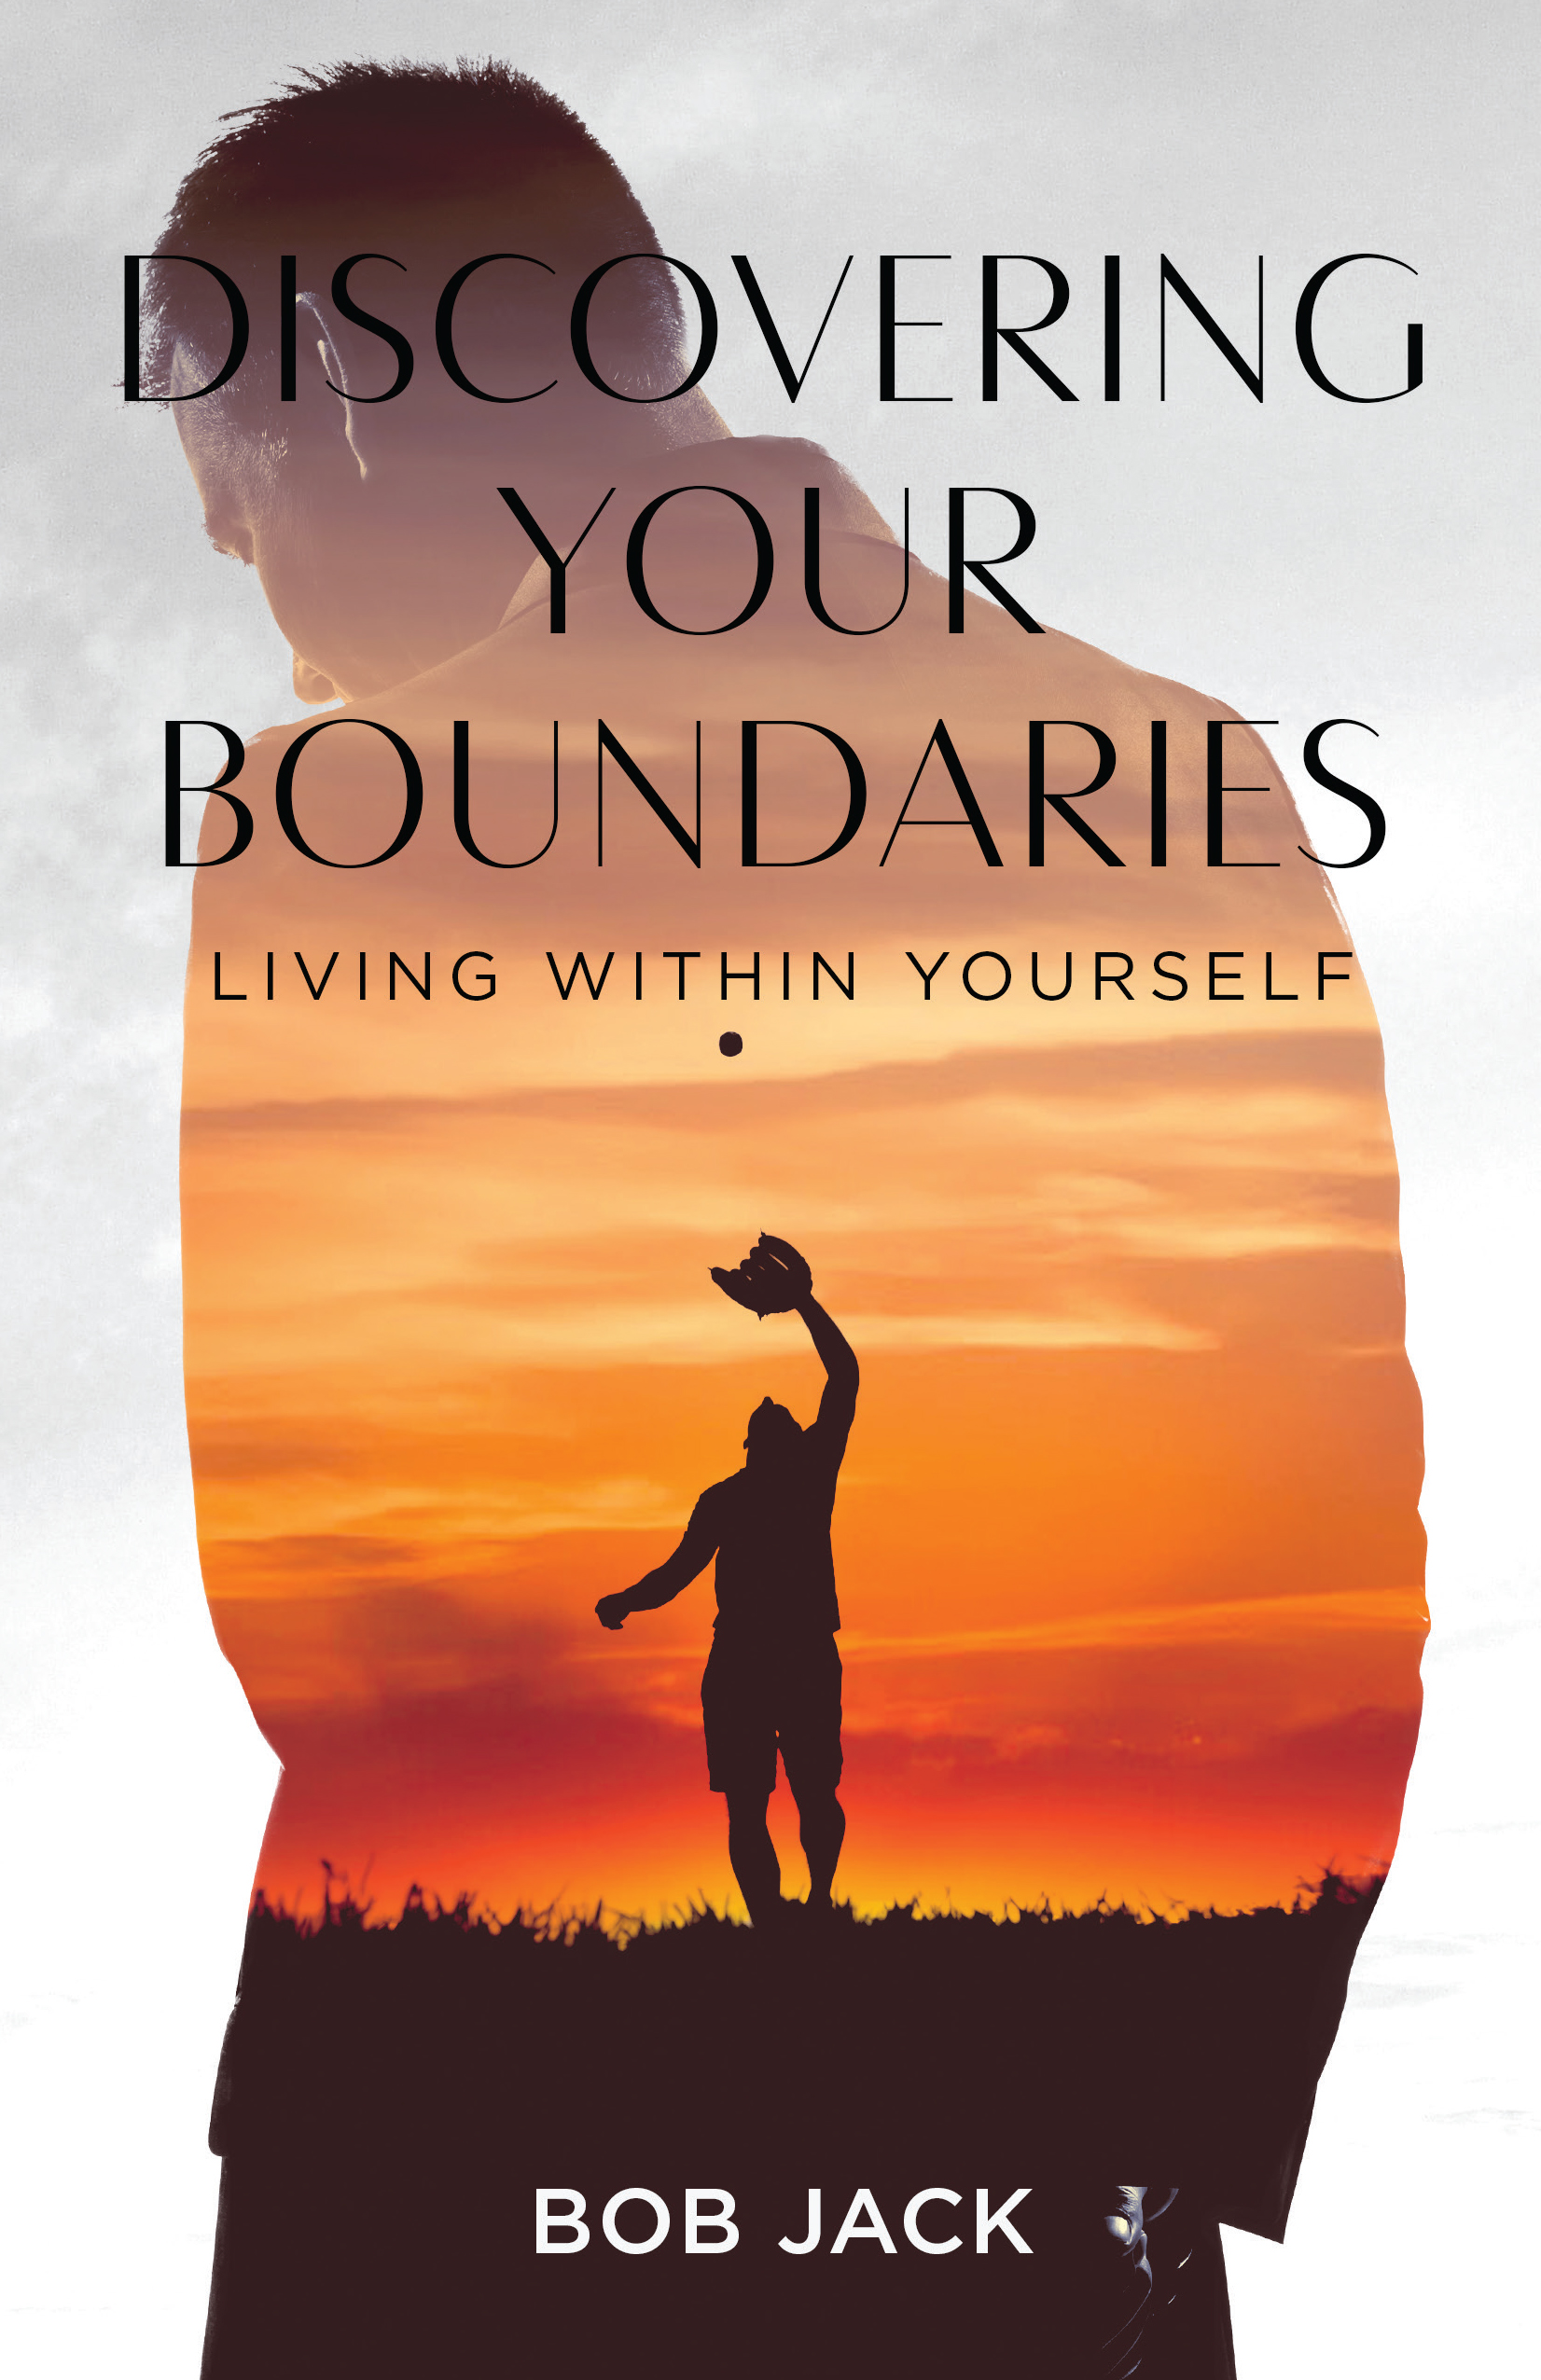 Bob Jack makes a comeback in the limelight with a riveting piece - Discovering Your Boundaries.